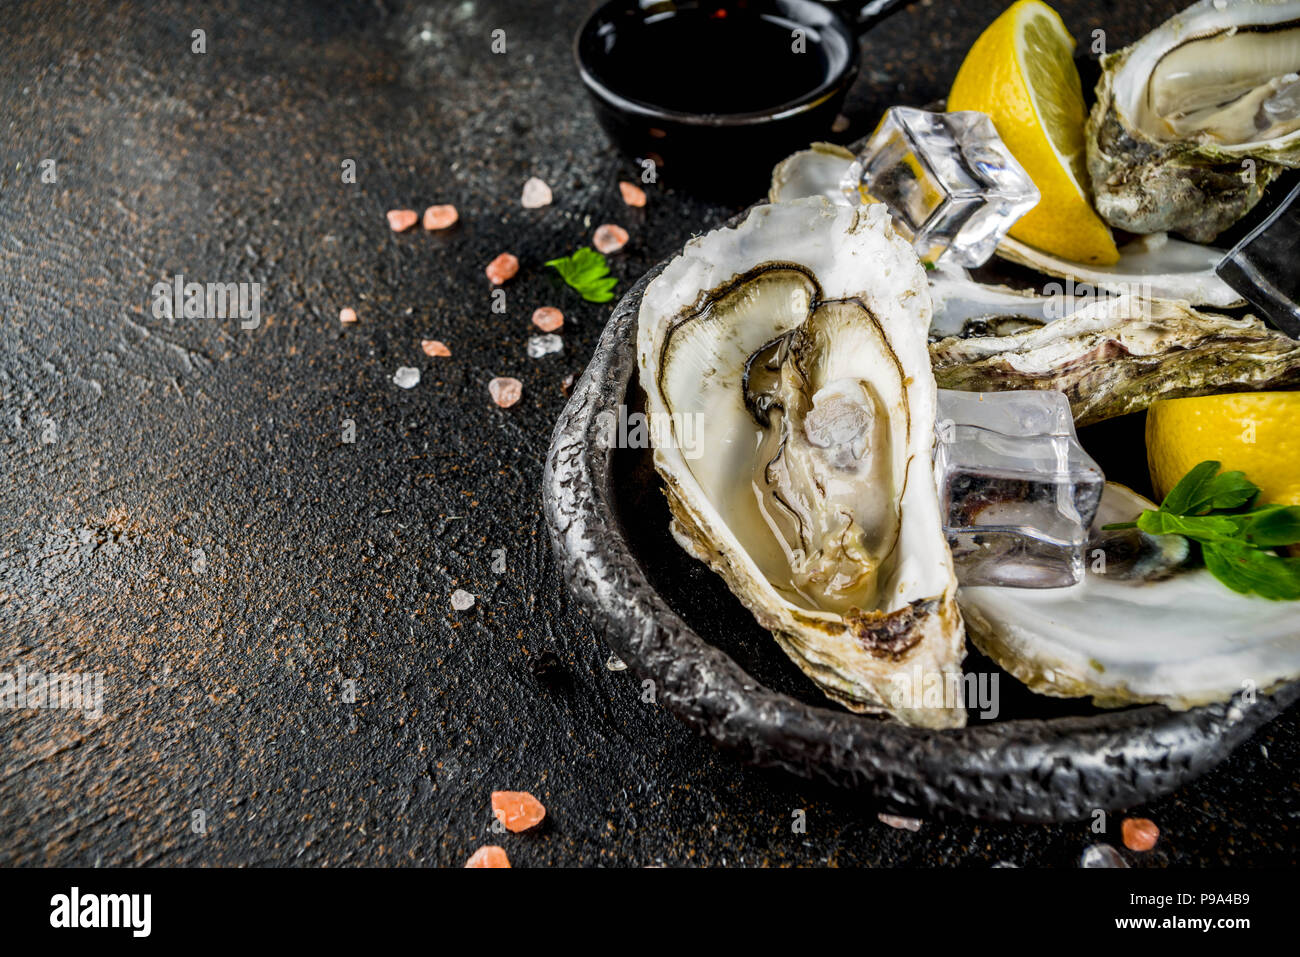 Fresh raw seafood, oysters with lemon and ice on a light blue background - Stock Image